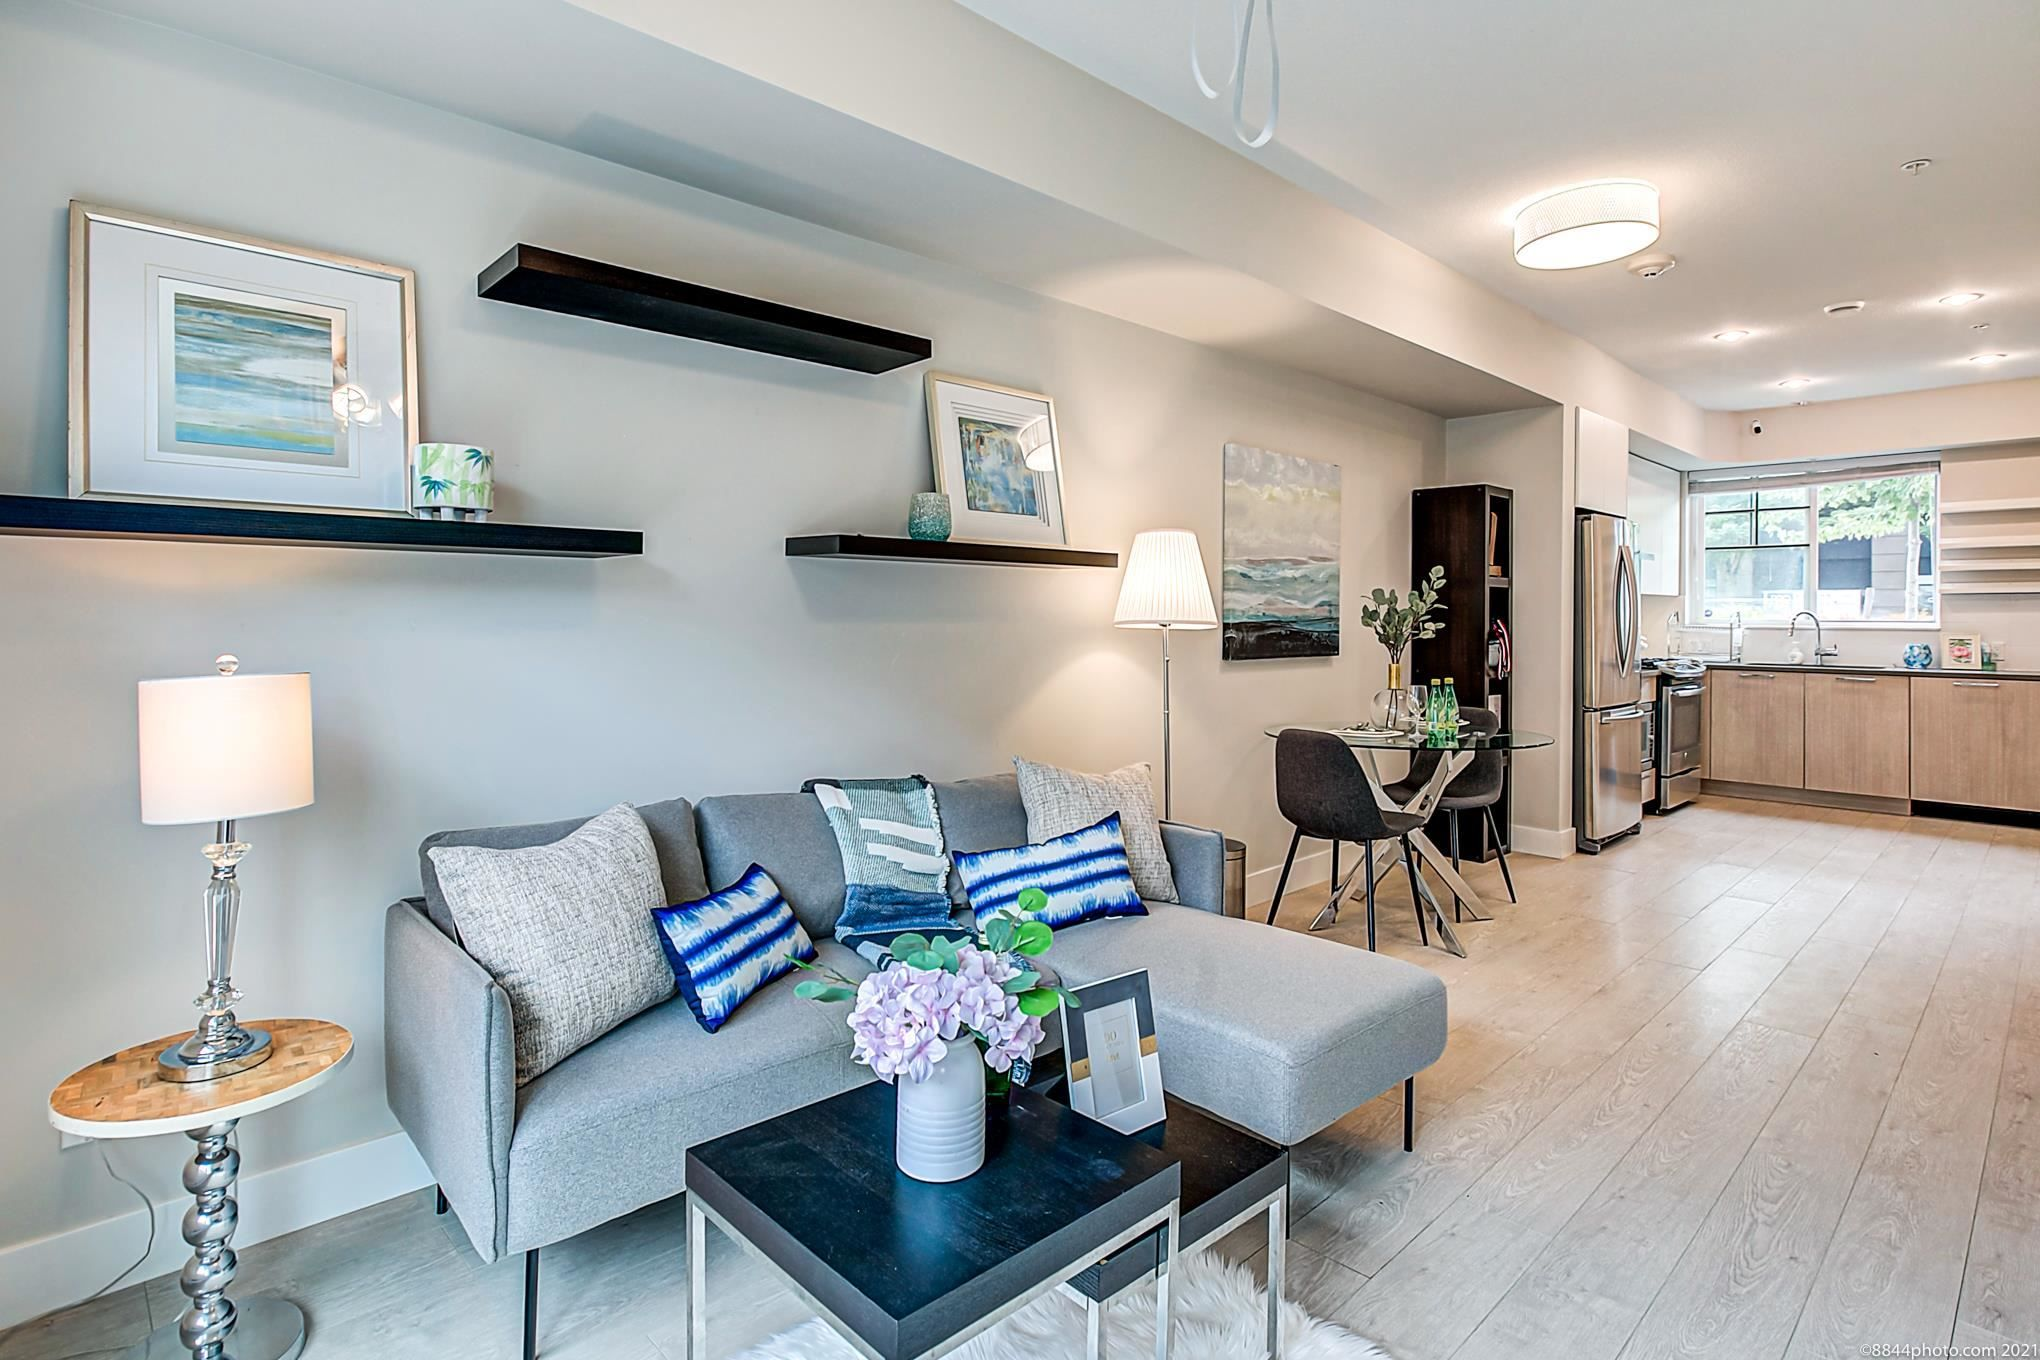 """Main Photo: 7 5132 CANADA Way in Burnaby: Burnaby Lake Townhouse for sale in """"SAVLIE ROW"""" (Burnaby South)  : MLS®# R2596994"""